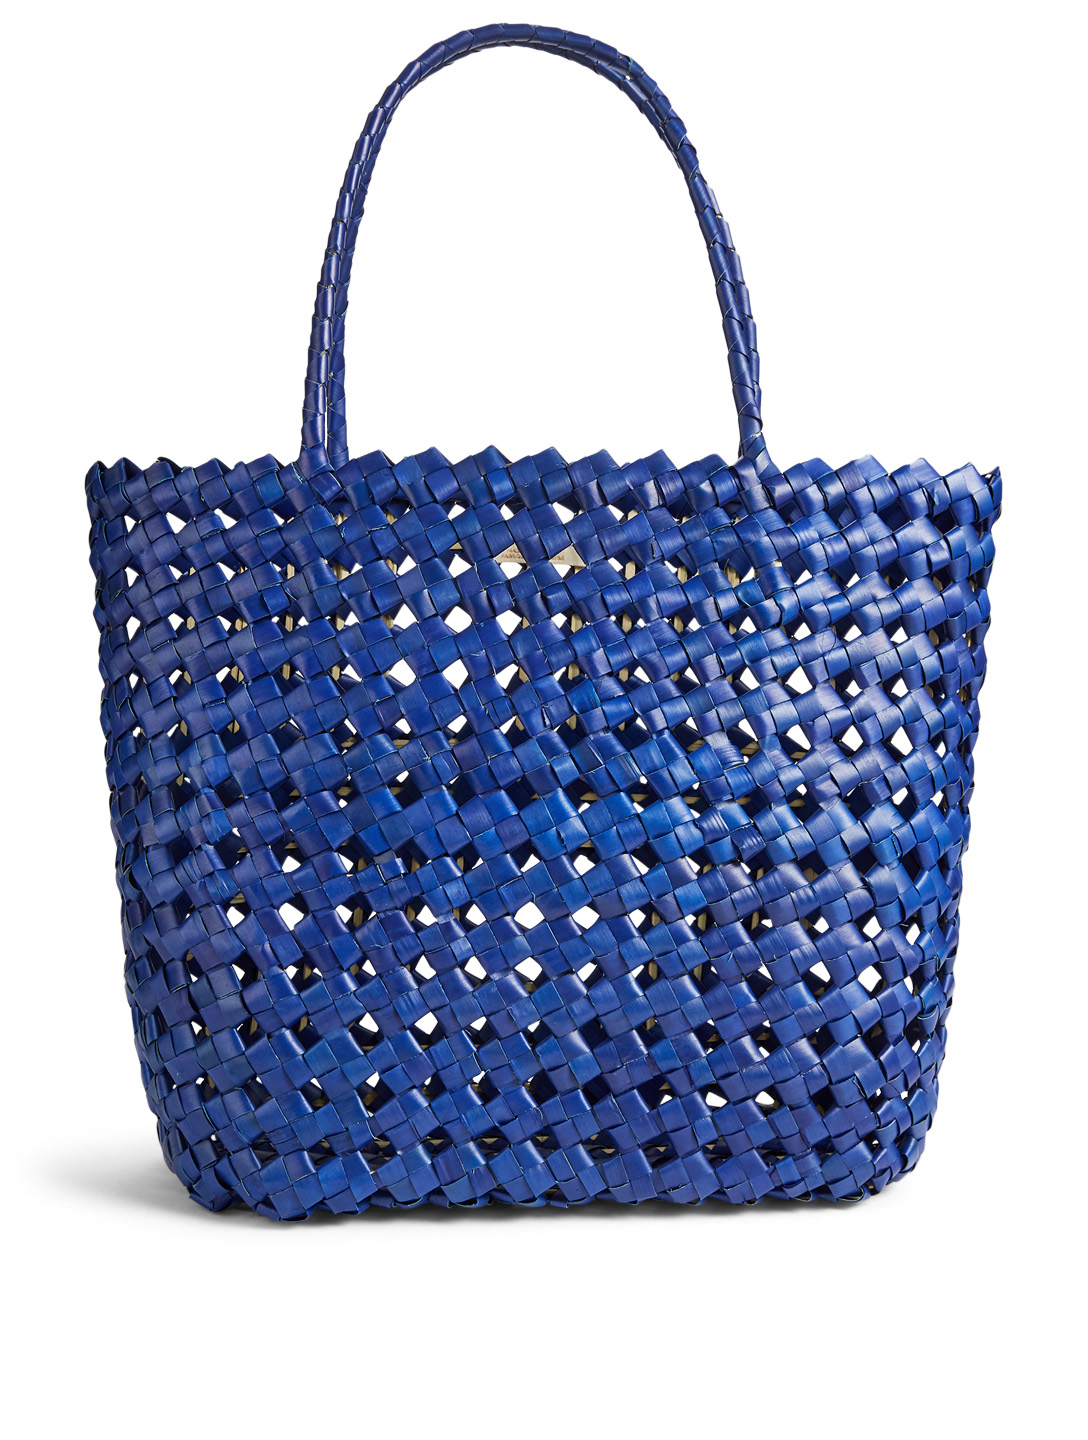 BEACHGOLD Sari Woven Palm Tote Bag H Project Blue